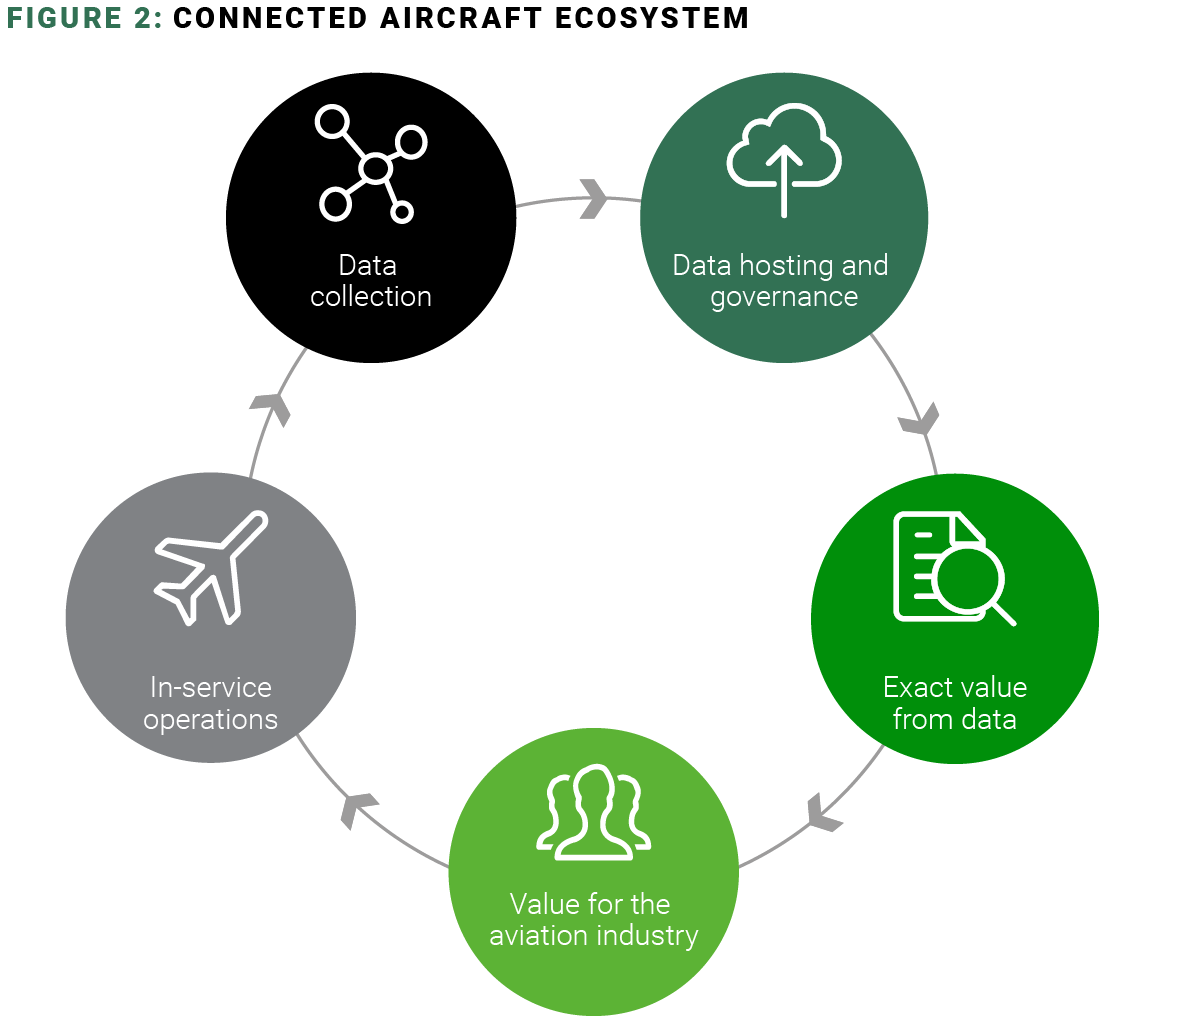 connected aircraft ecosystem 2019